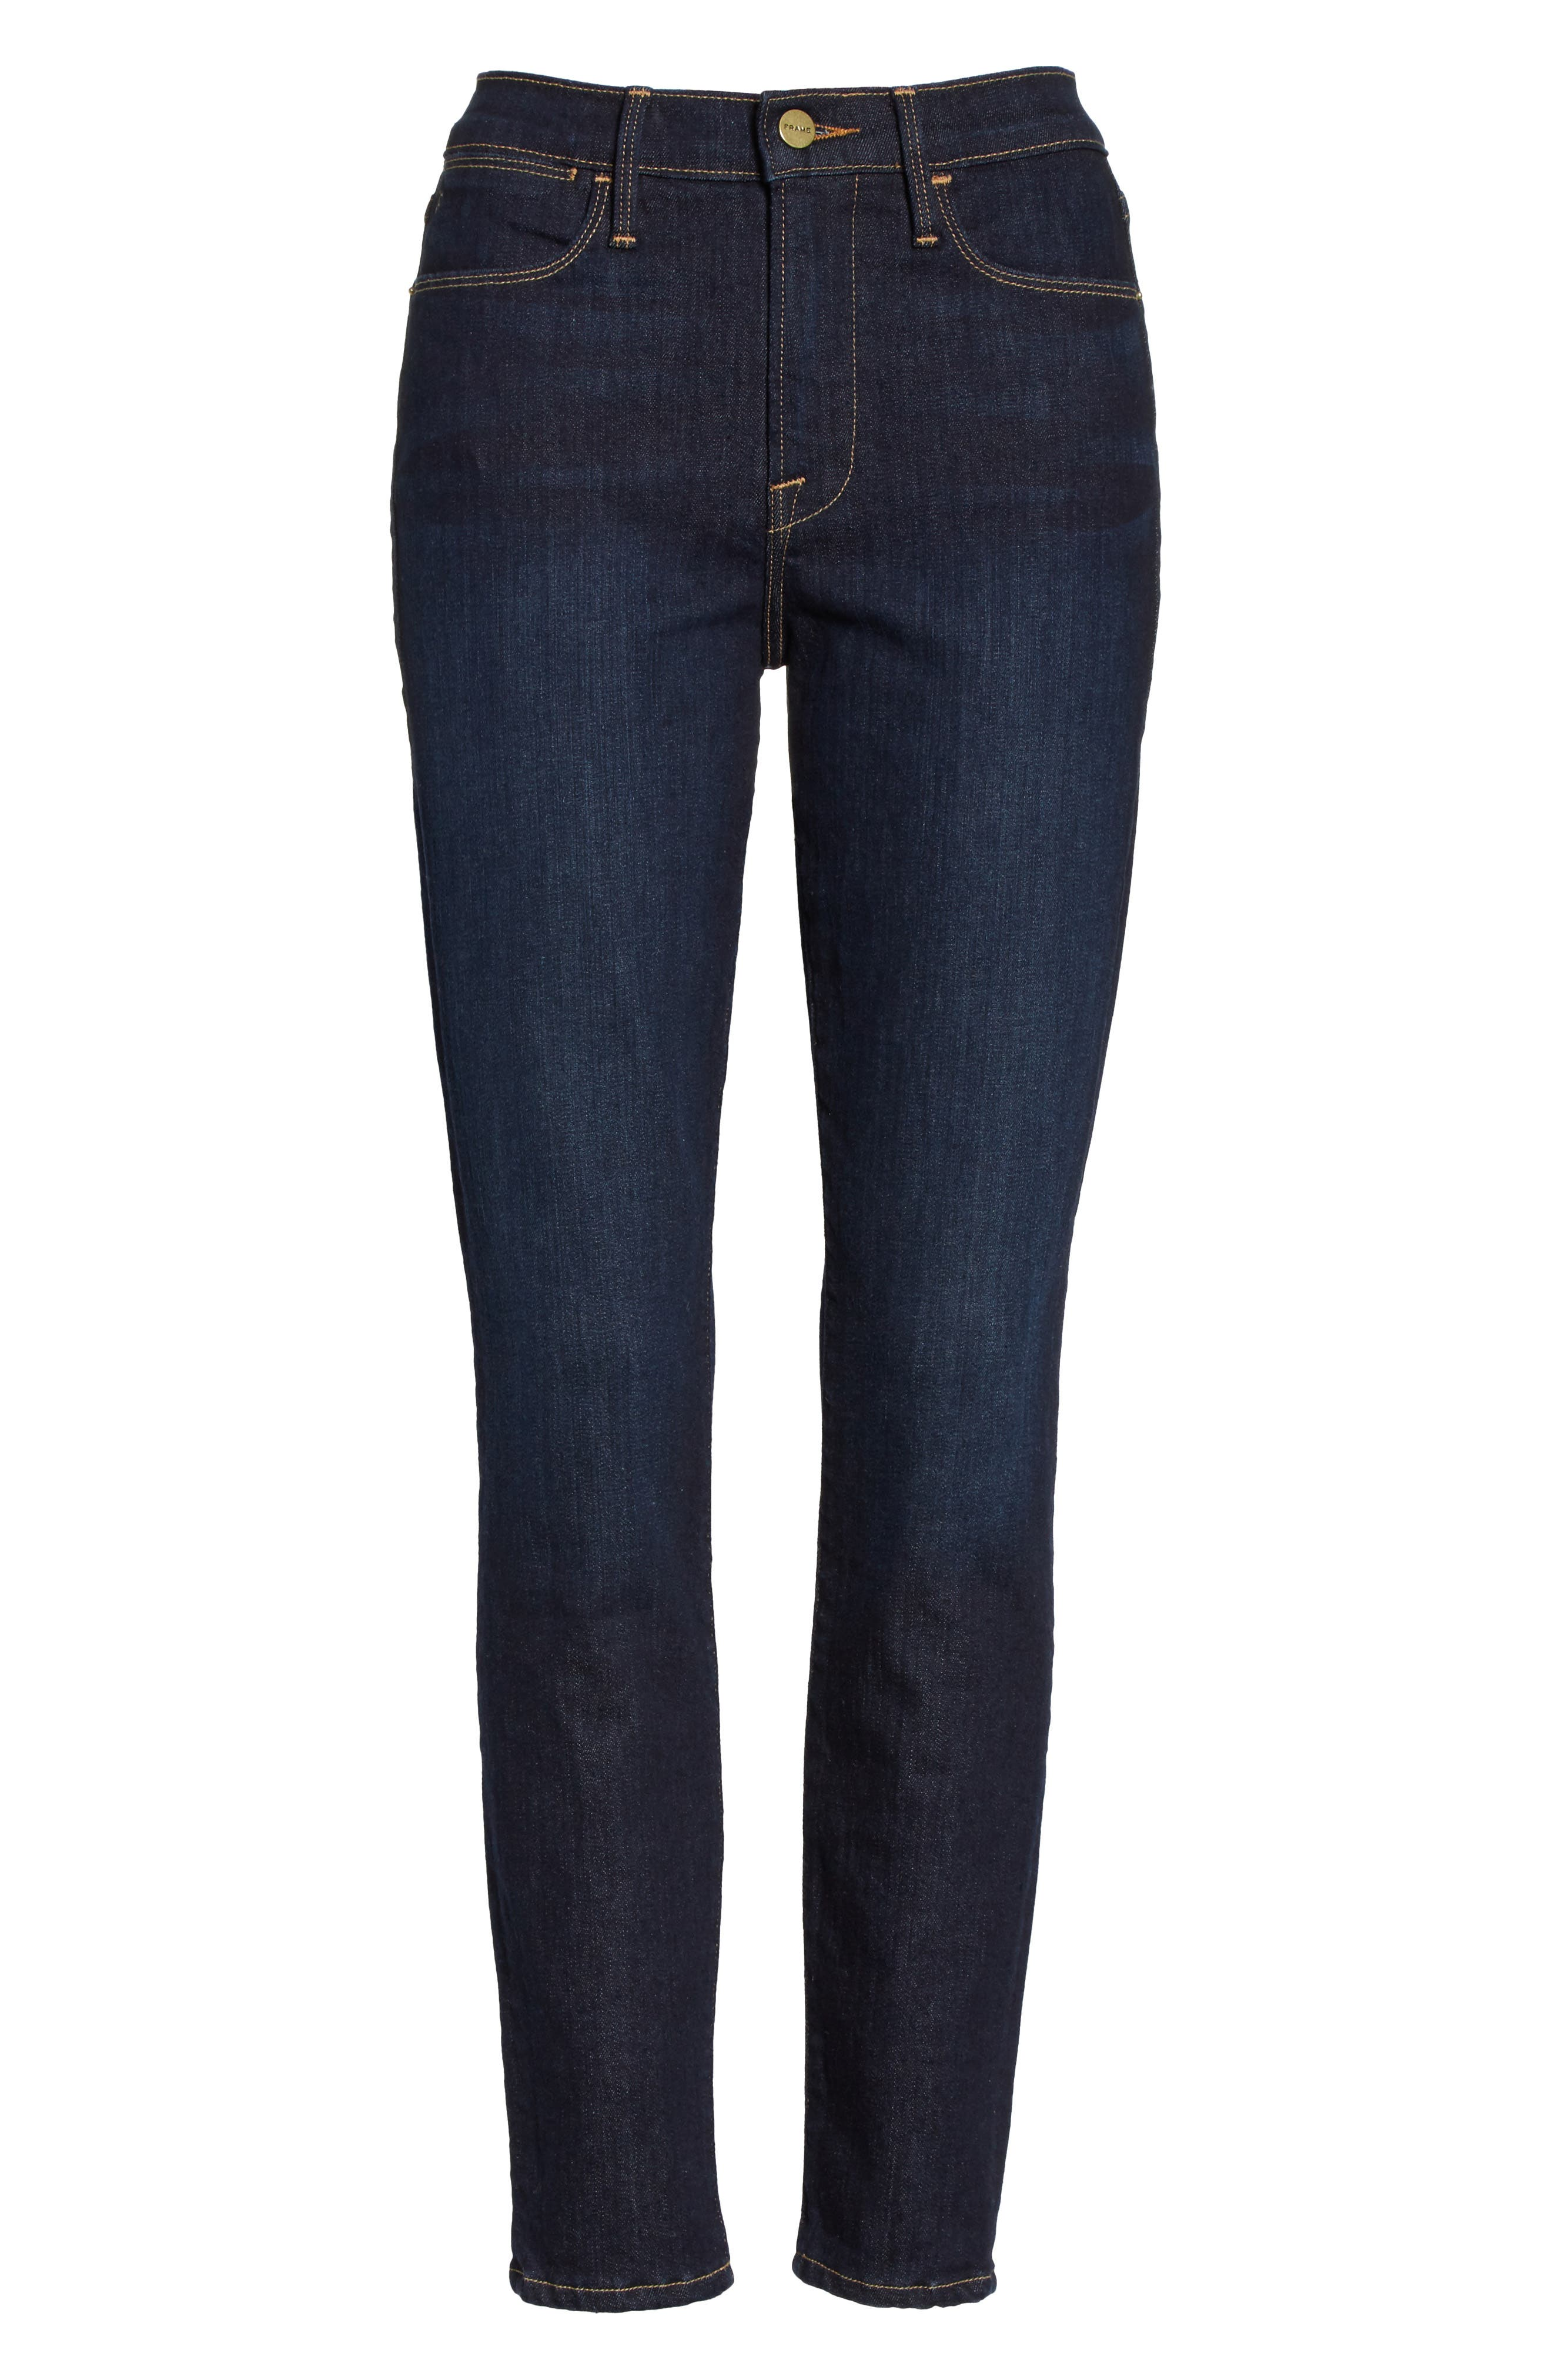 Le High Ankle Skinny Jeans,                             Alternate thumbnail 6, color,                             Dame